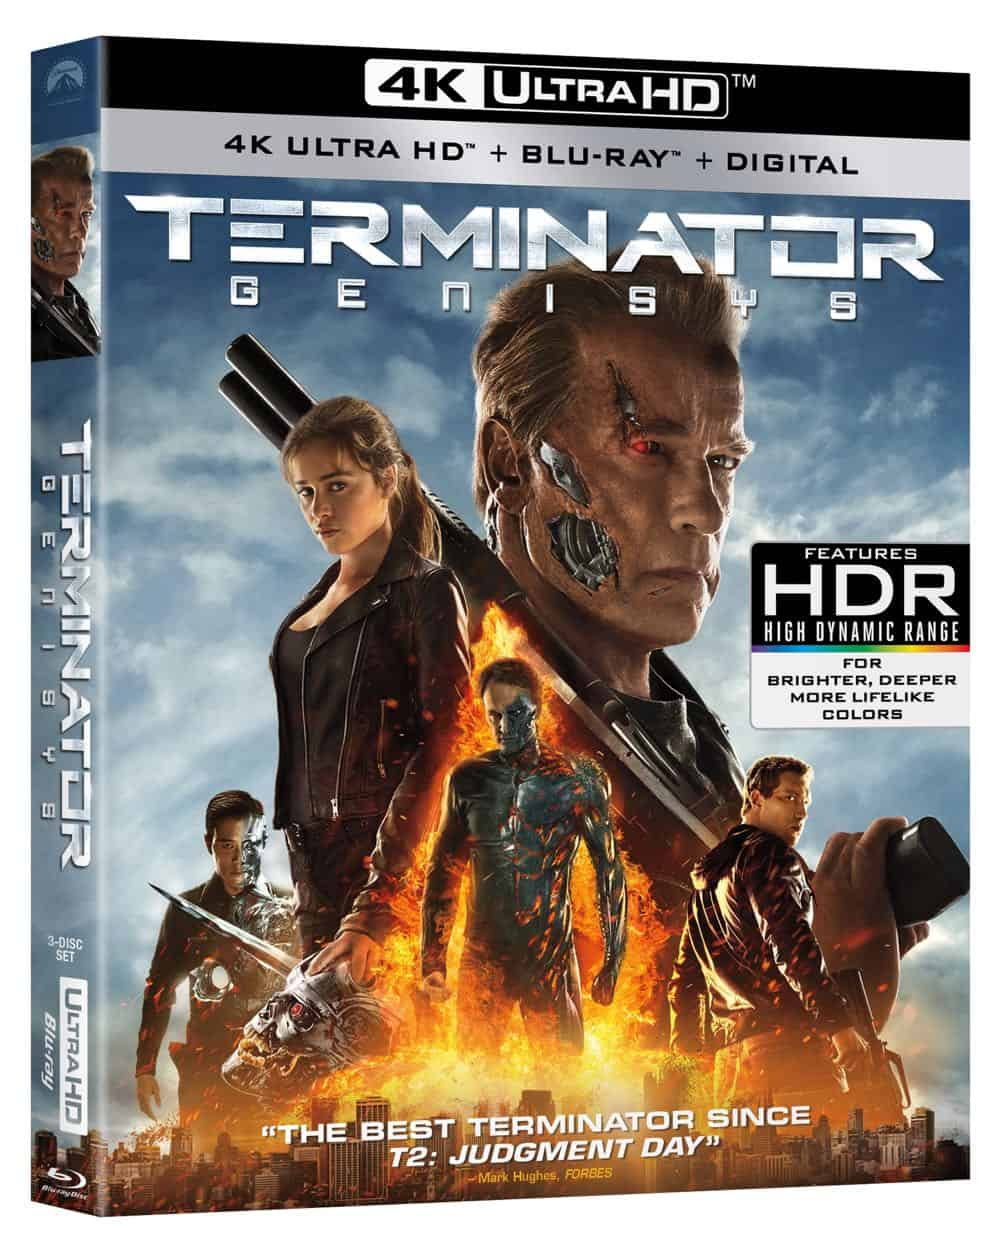 TERMINATOR-GENISYS-4K-Cover1